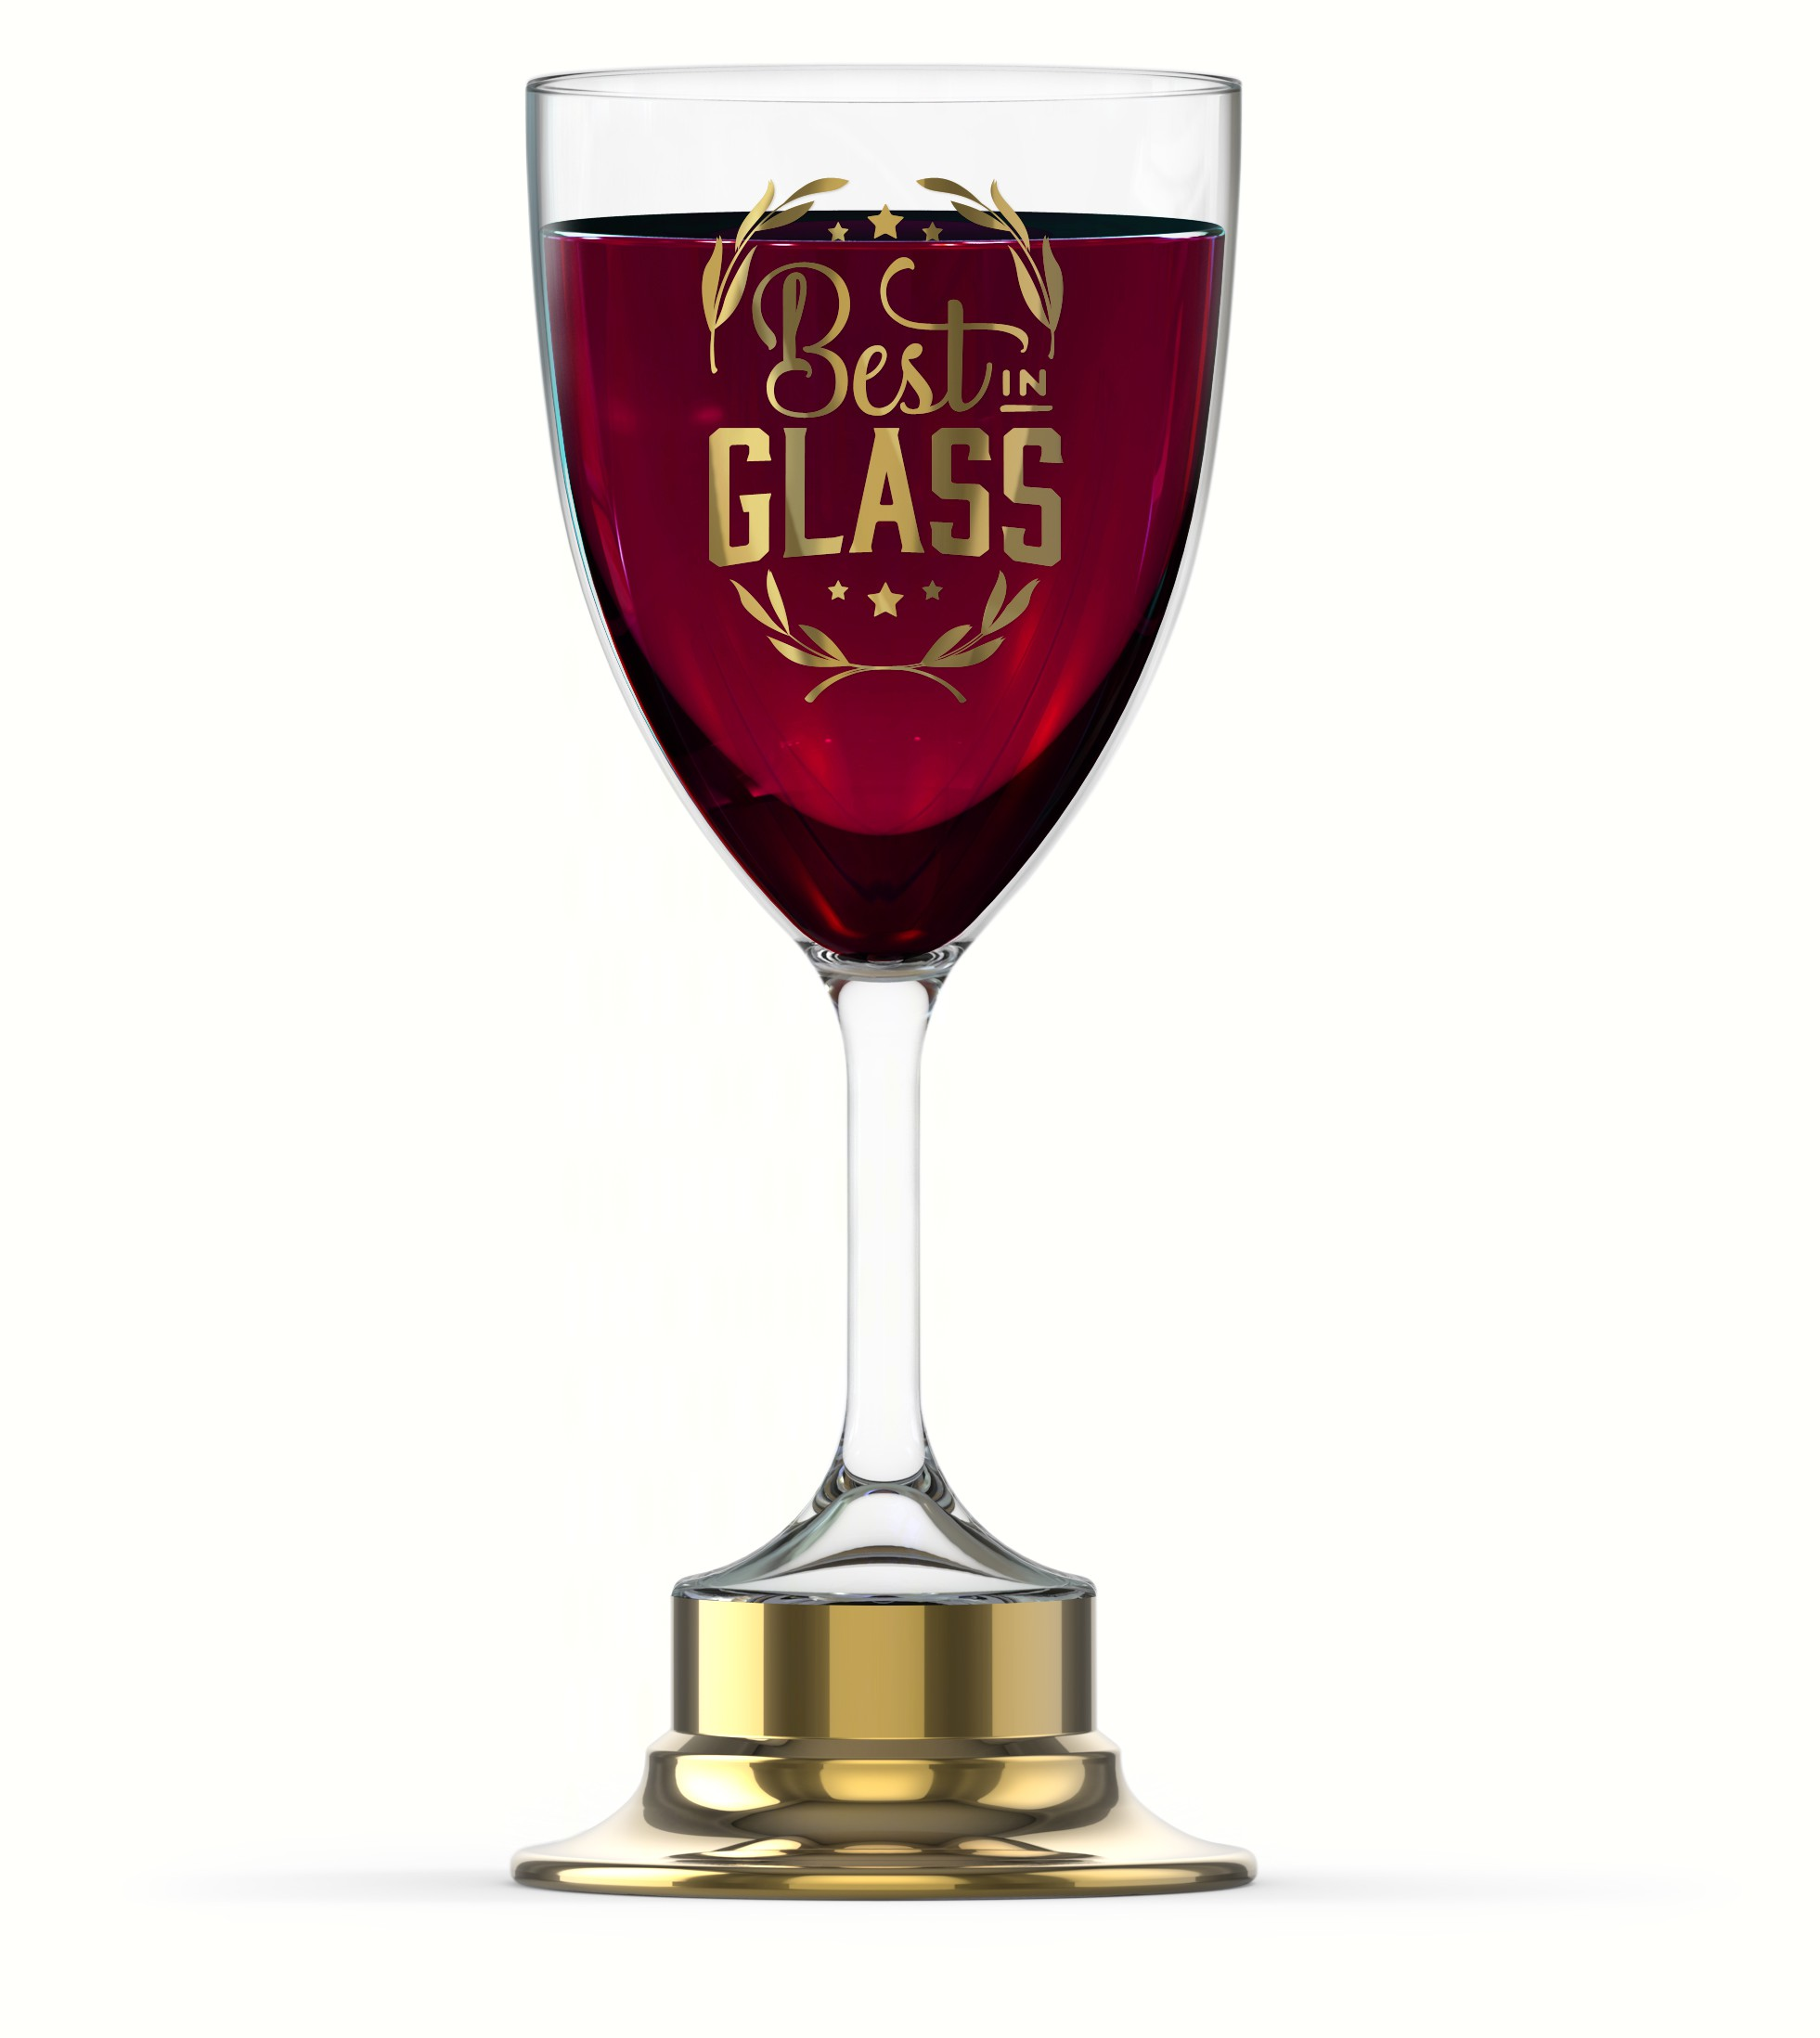 Best in Glass Trophy Wine Glass